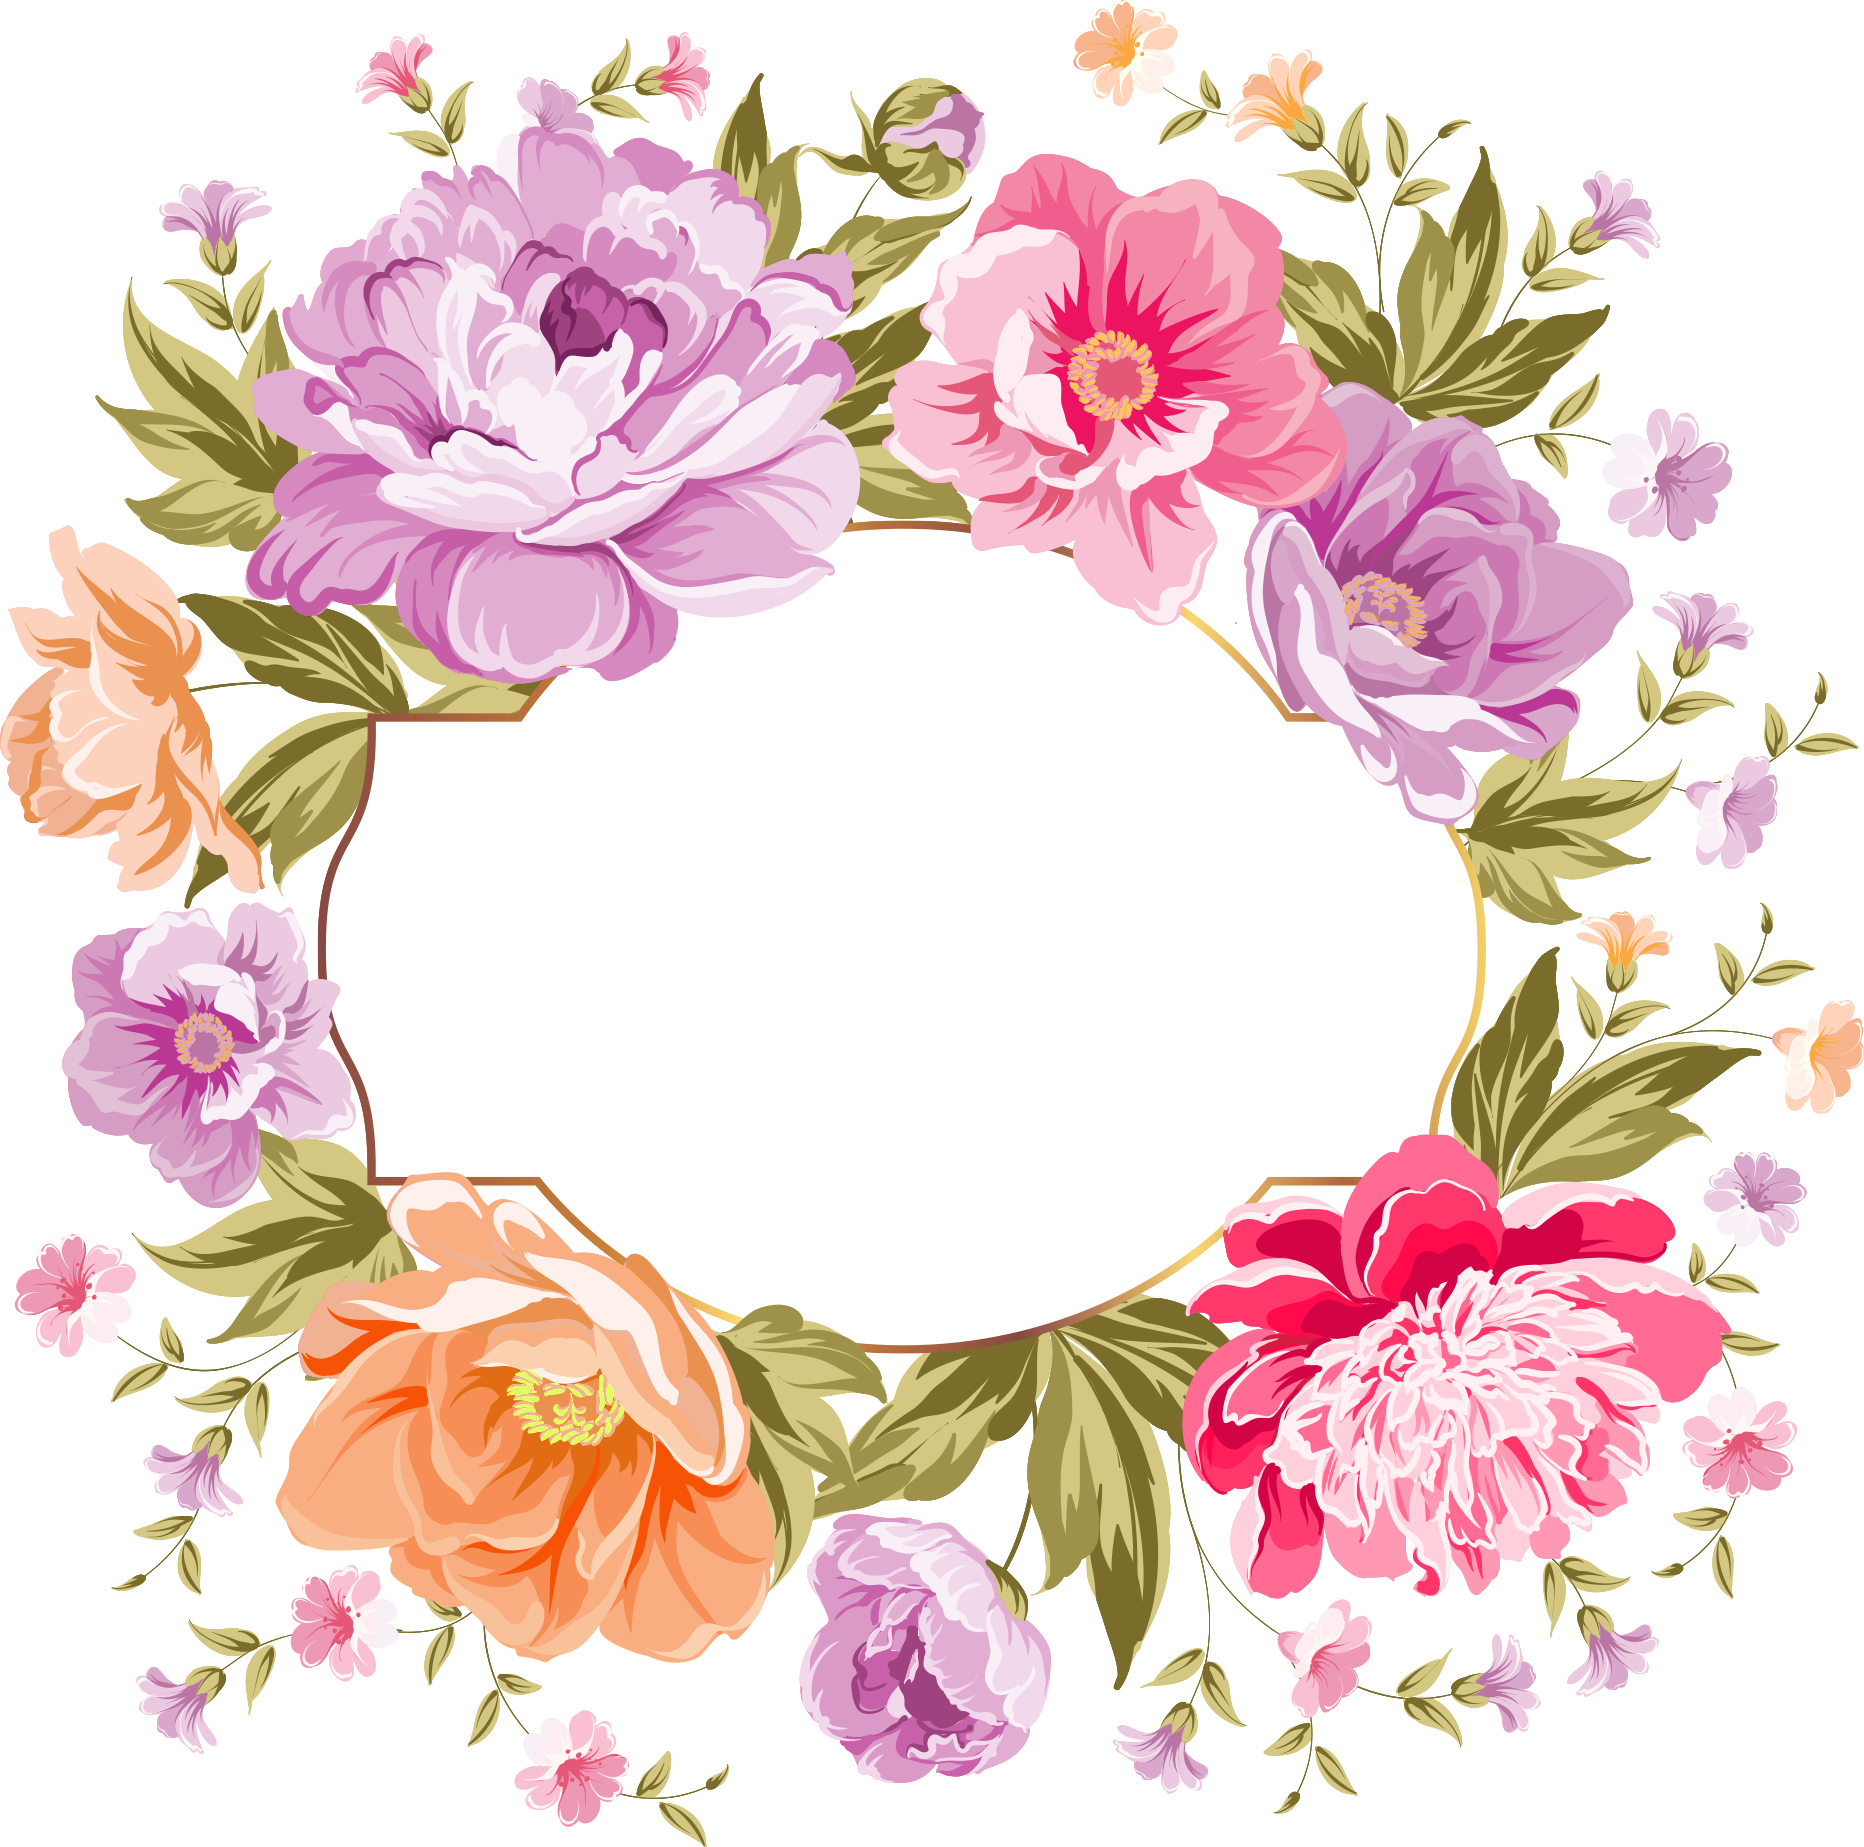 Clipart roses natural. Http d top net